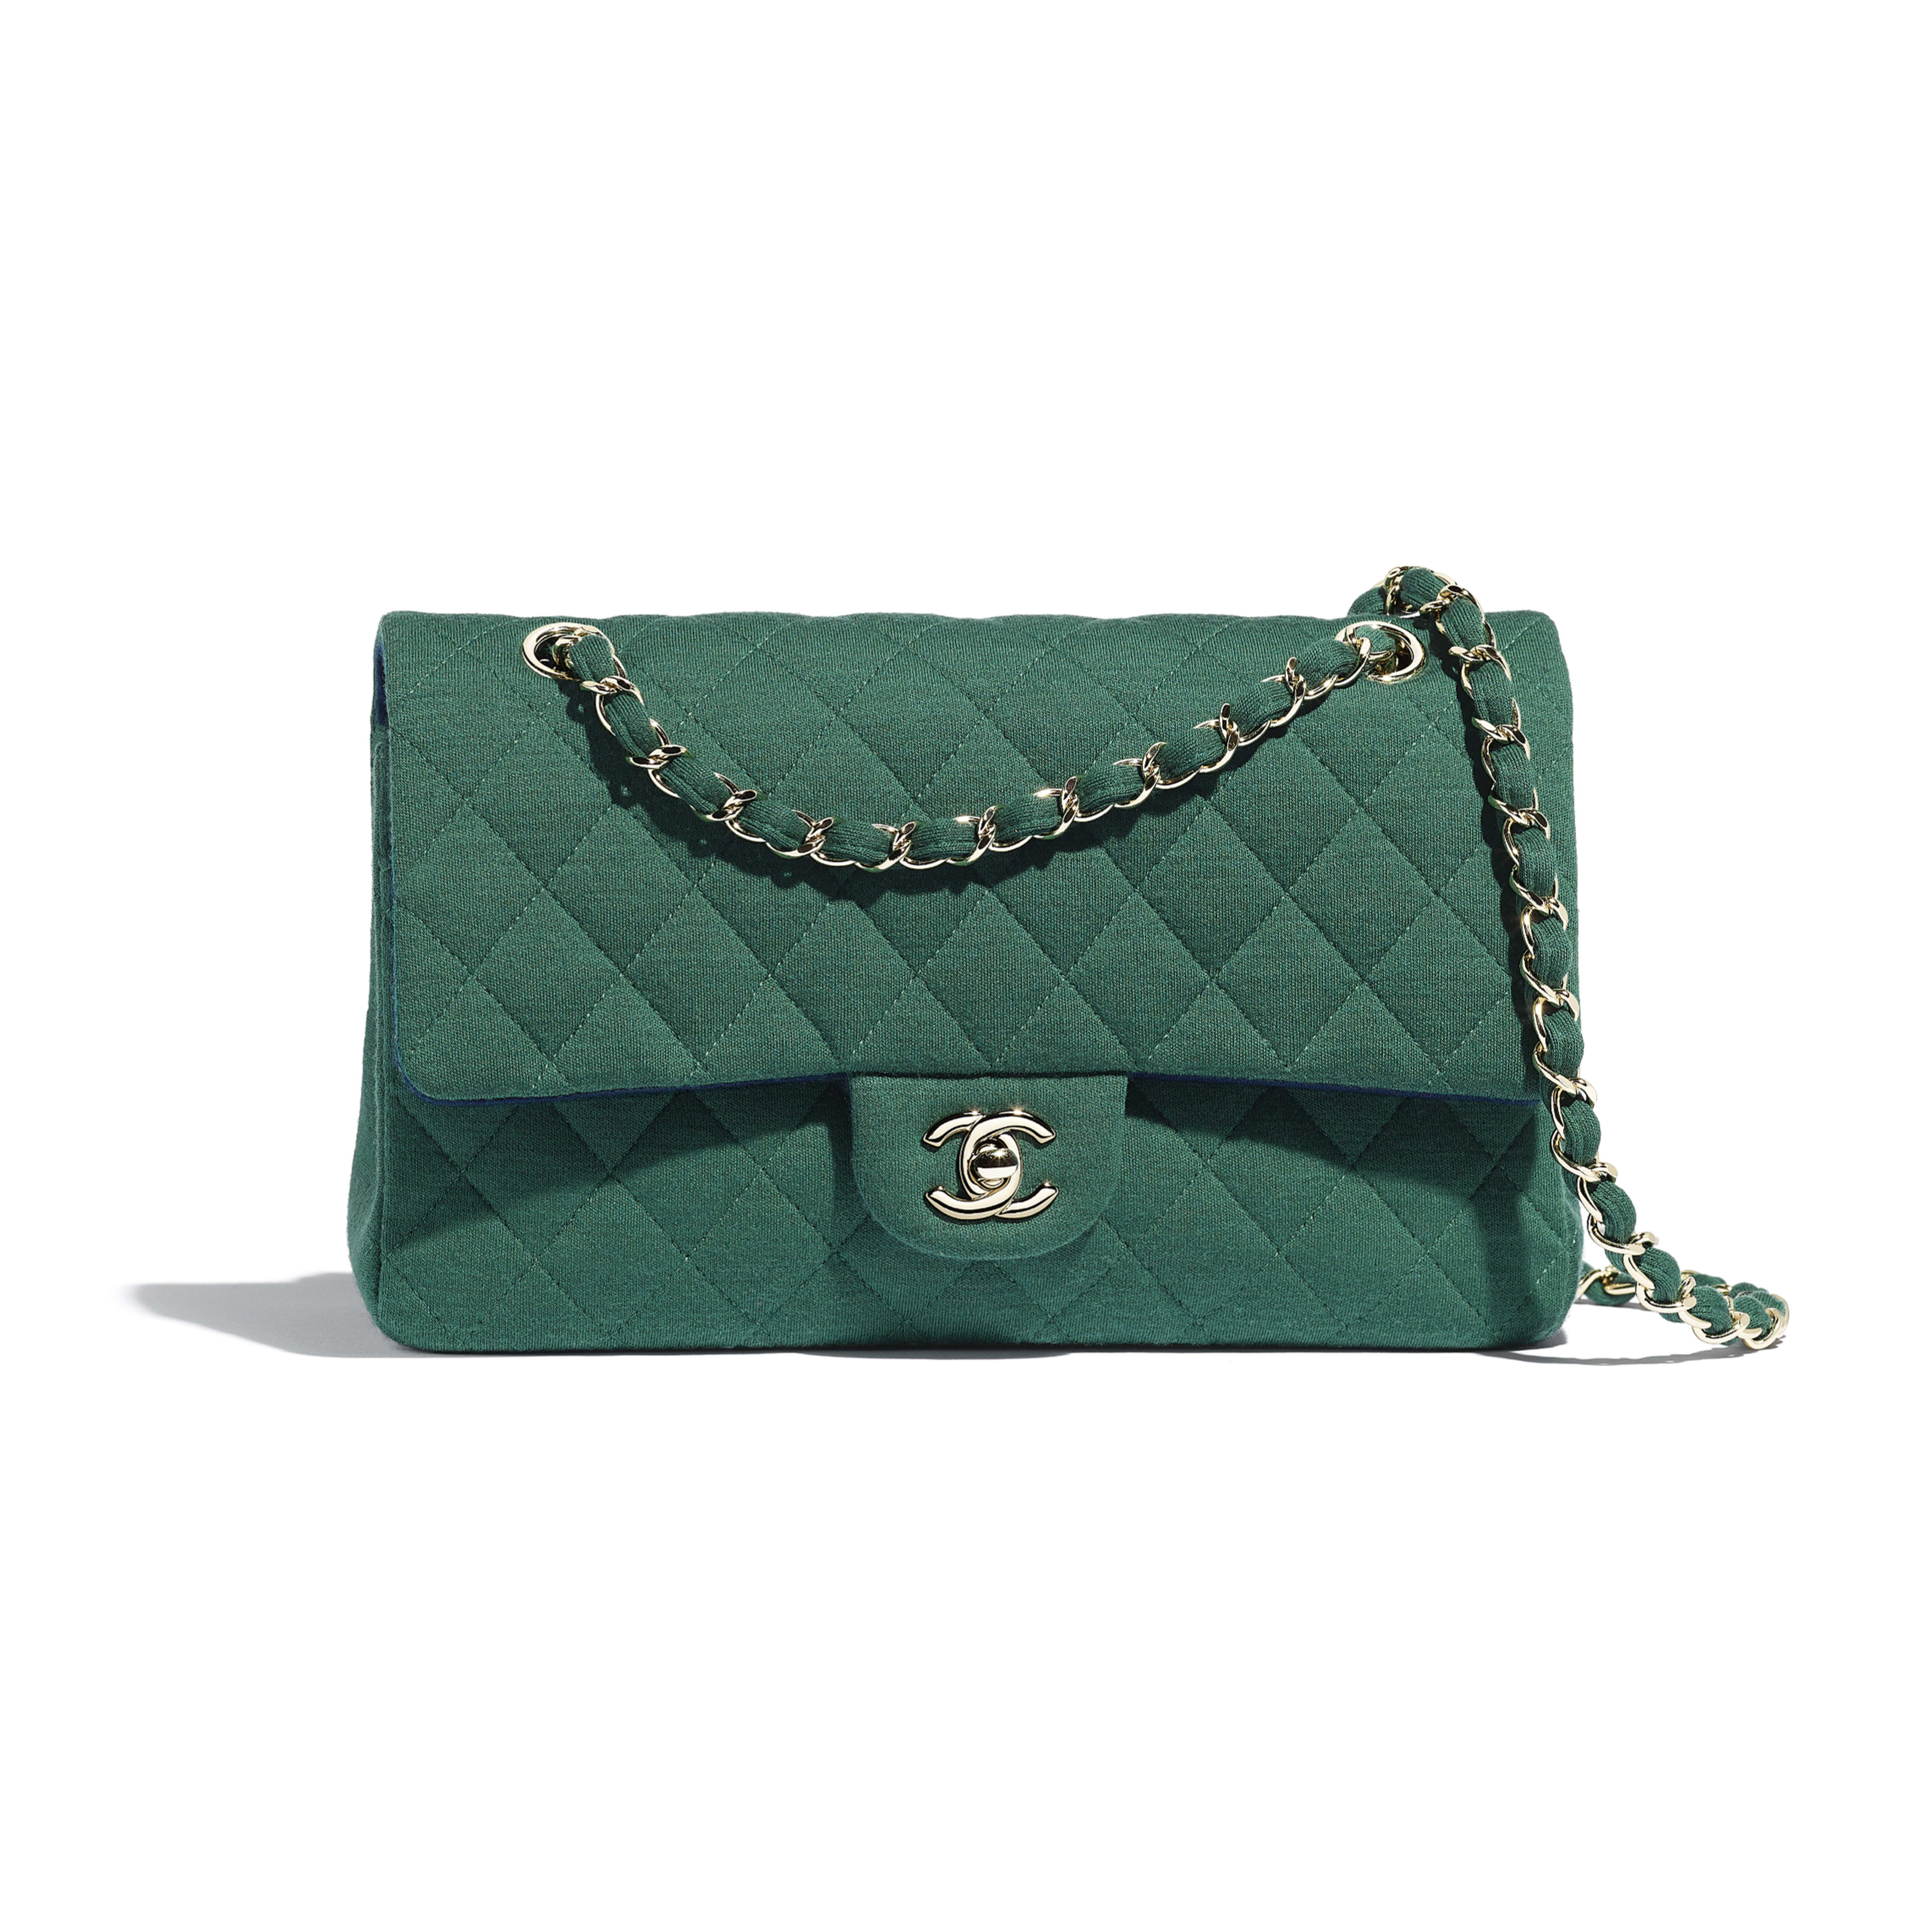 Classic Handbag - Green - Jersey & Gold-Tone Metal - Default view - see full sized version